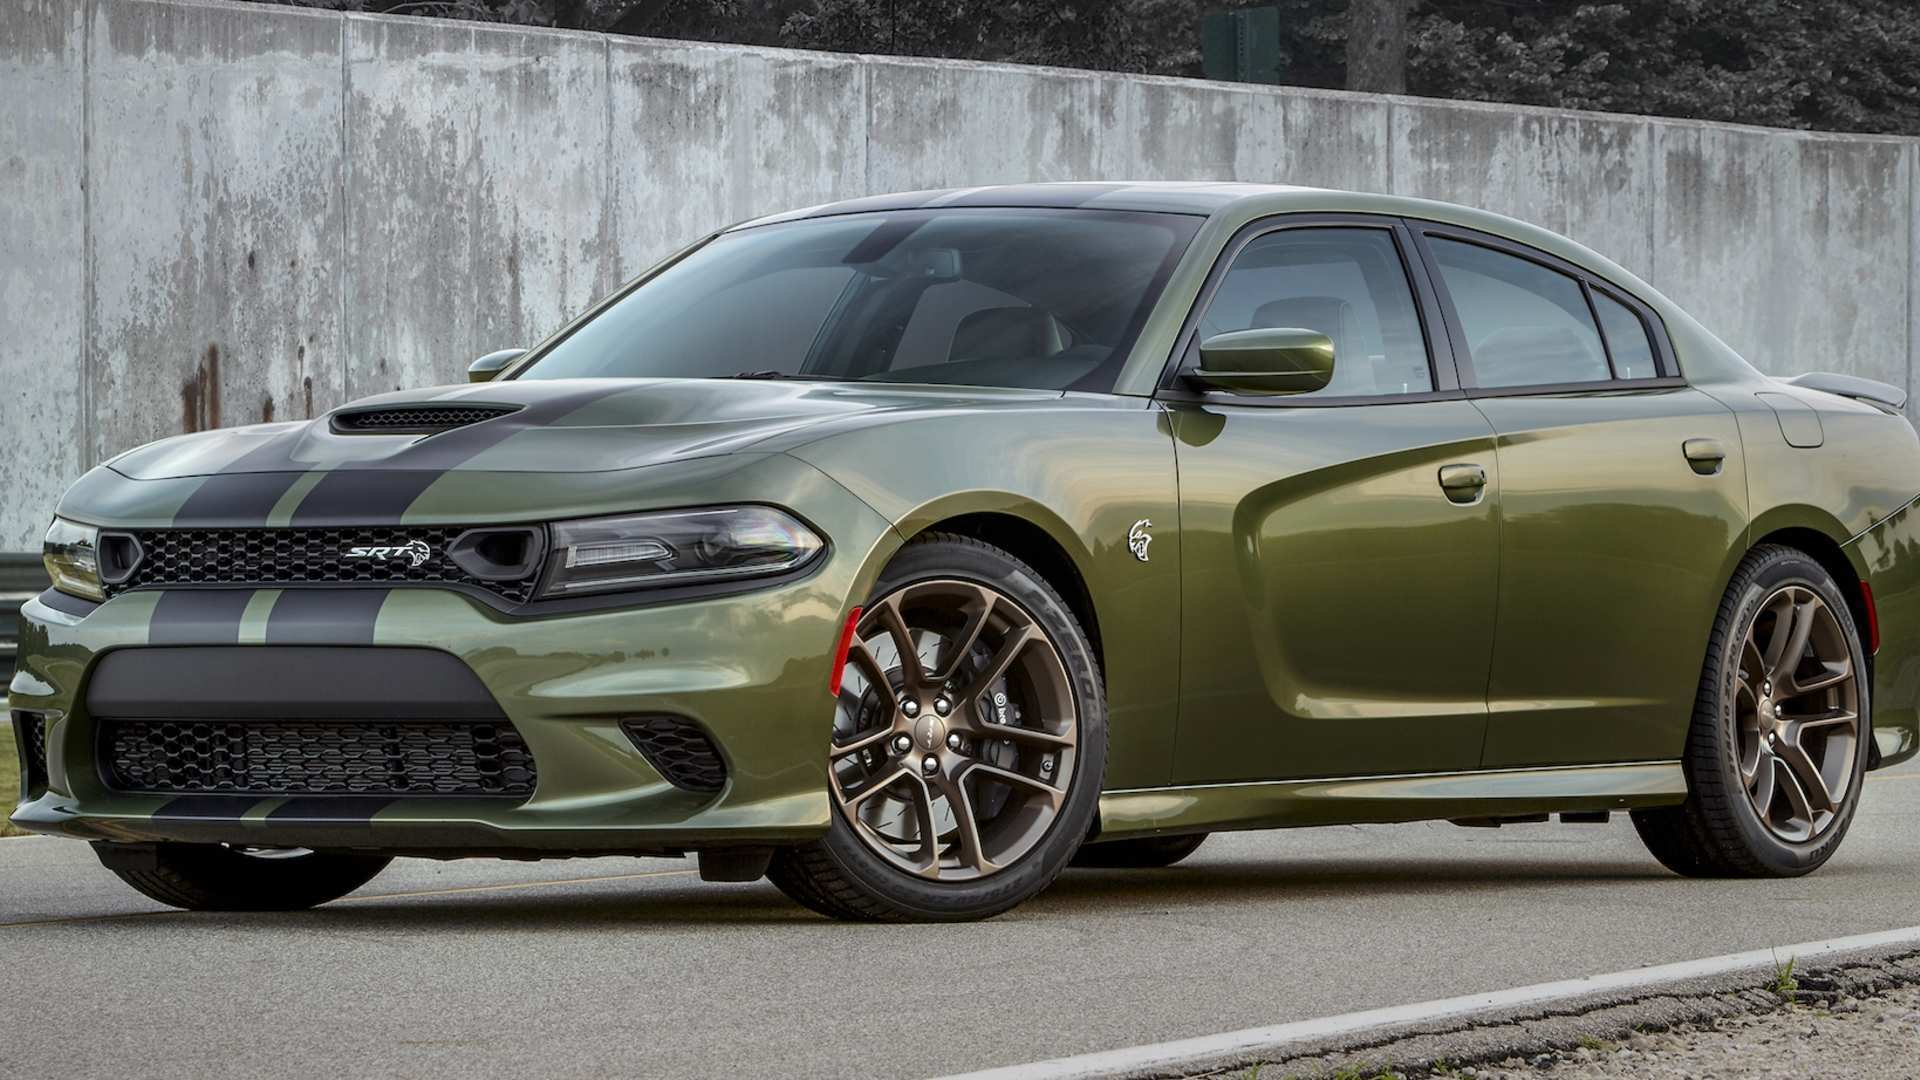 89 New 2019 Dodge Charger SRT8 New Concept